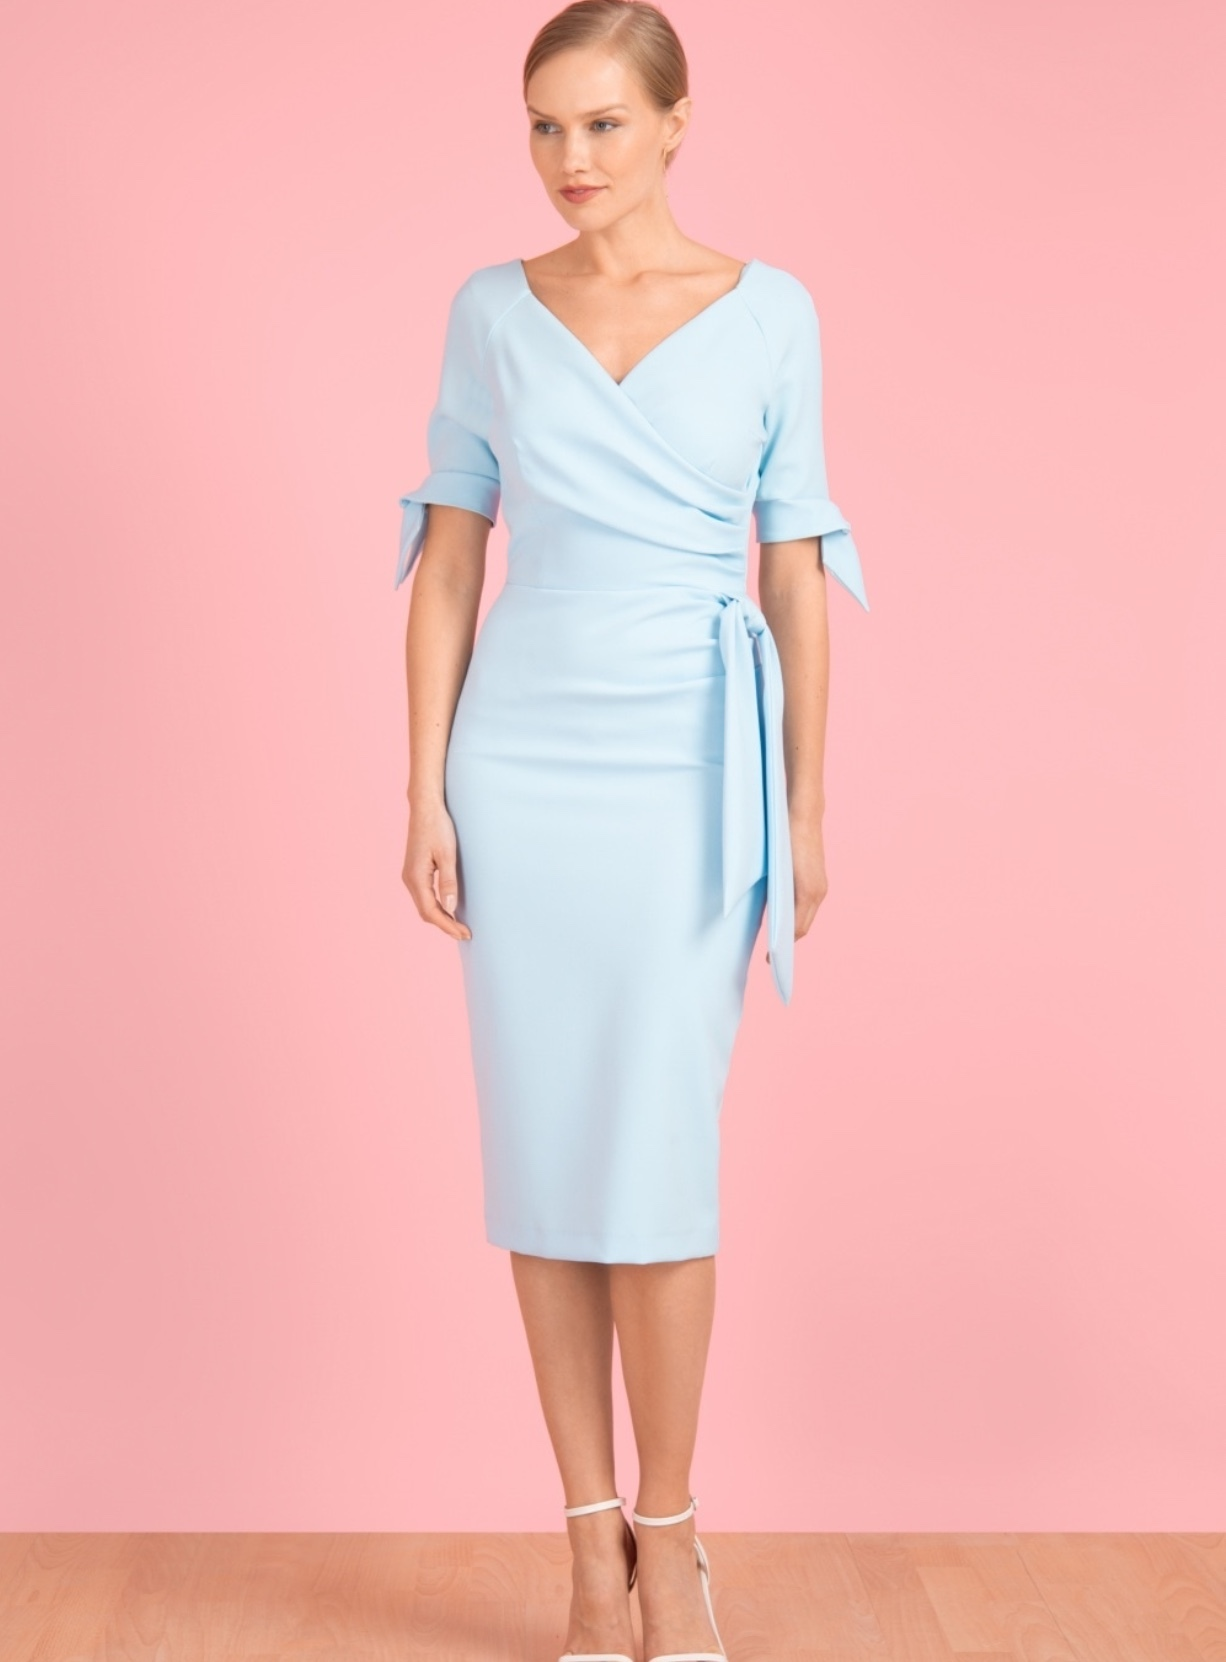 Hourglass Dress with Bows on Sleeves in Pale Blue PDChourglass